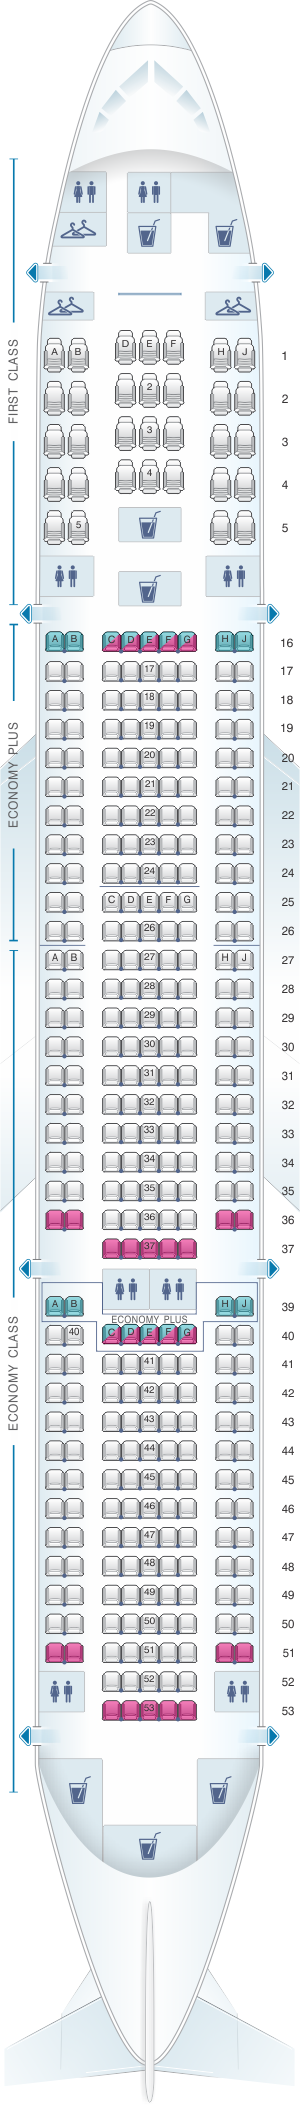 Seat map for United Airlines Boeing B777 200 (777) - version 3